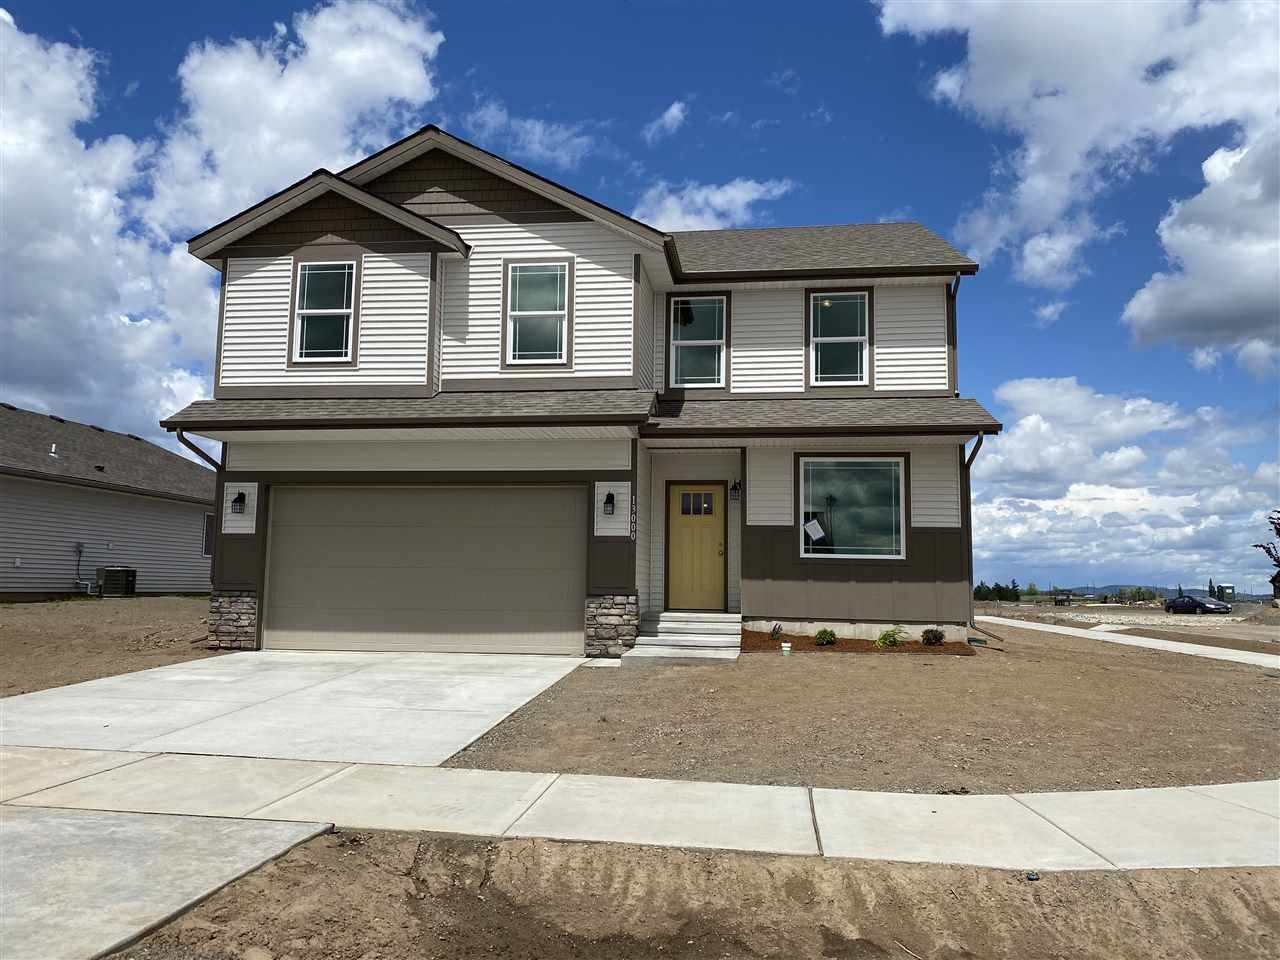 13000 W 2nd Ave, Airway Heights, WA 99001 - #: 201926725